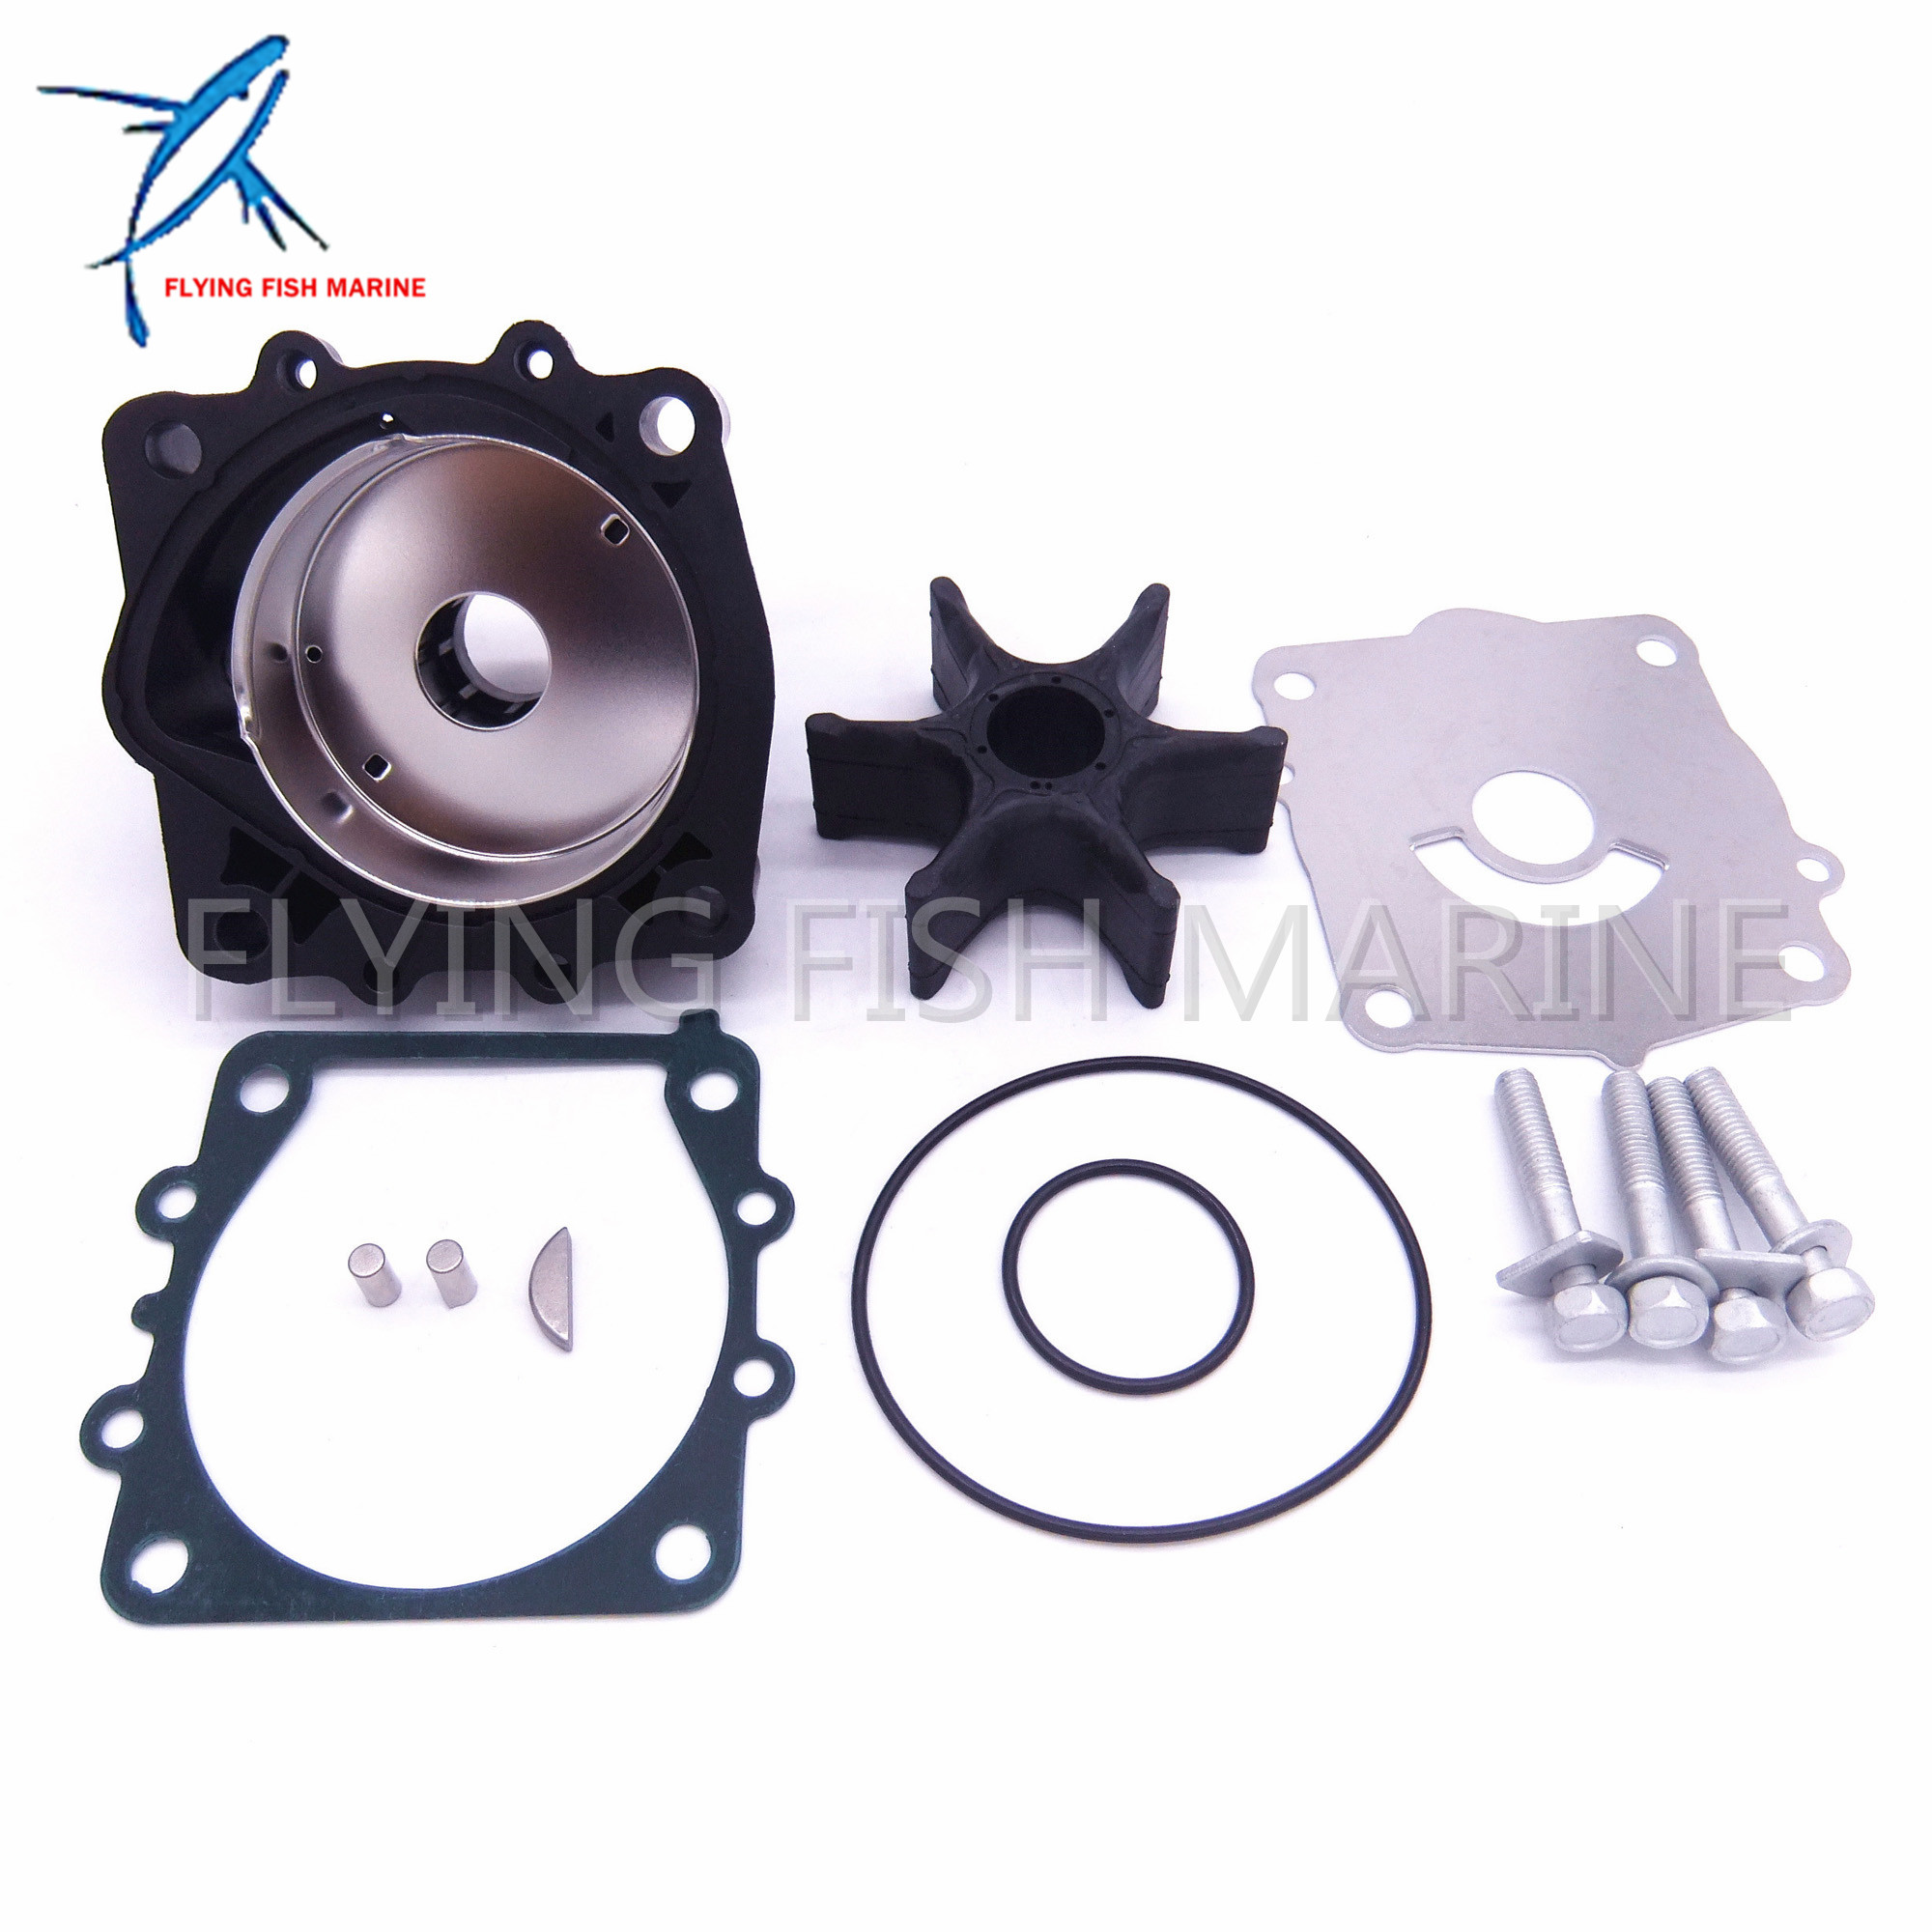 Outboard Motor 68V-W0078 68V-W0078-00 Water Pump Kit For Yamaha 115HP F115 Boat,Free Shipping 67h 43880 00 new tilt trim motor for yamaha 115 225 hp 1997 2002 outboard engine power motor 64e 43880